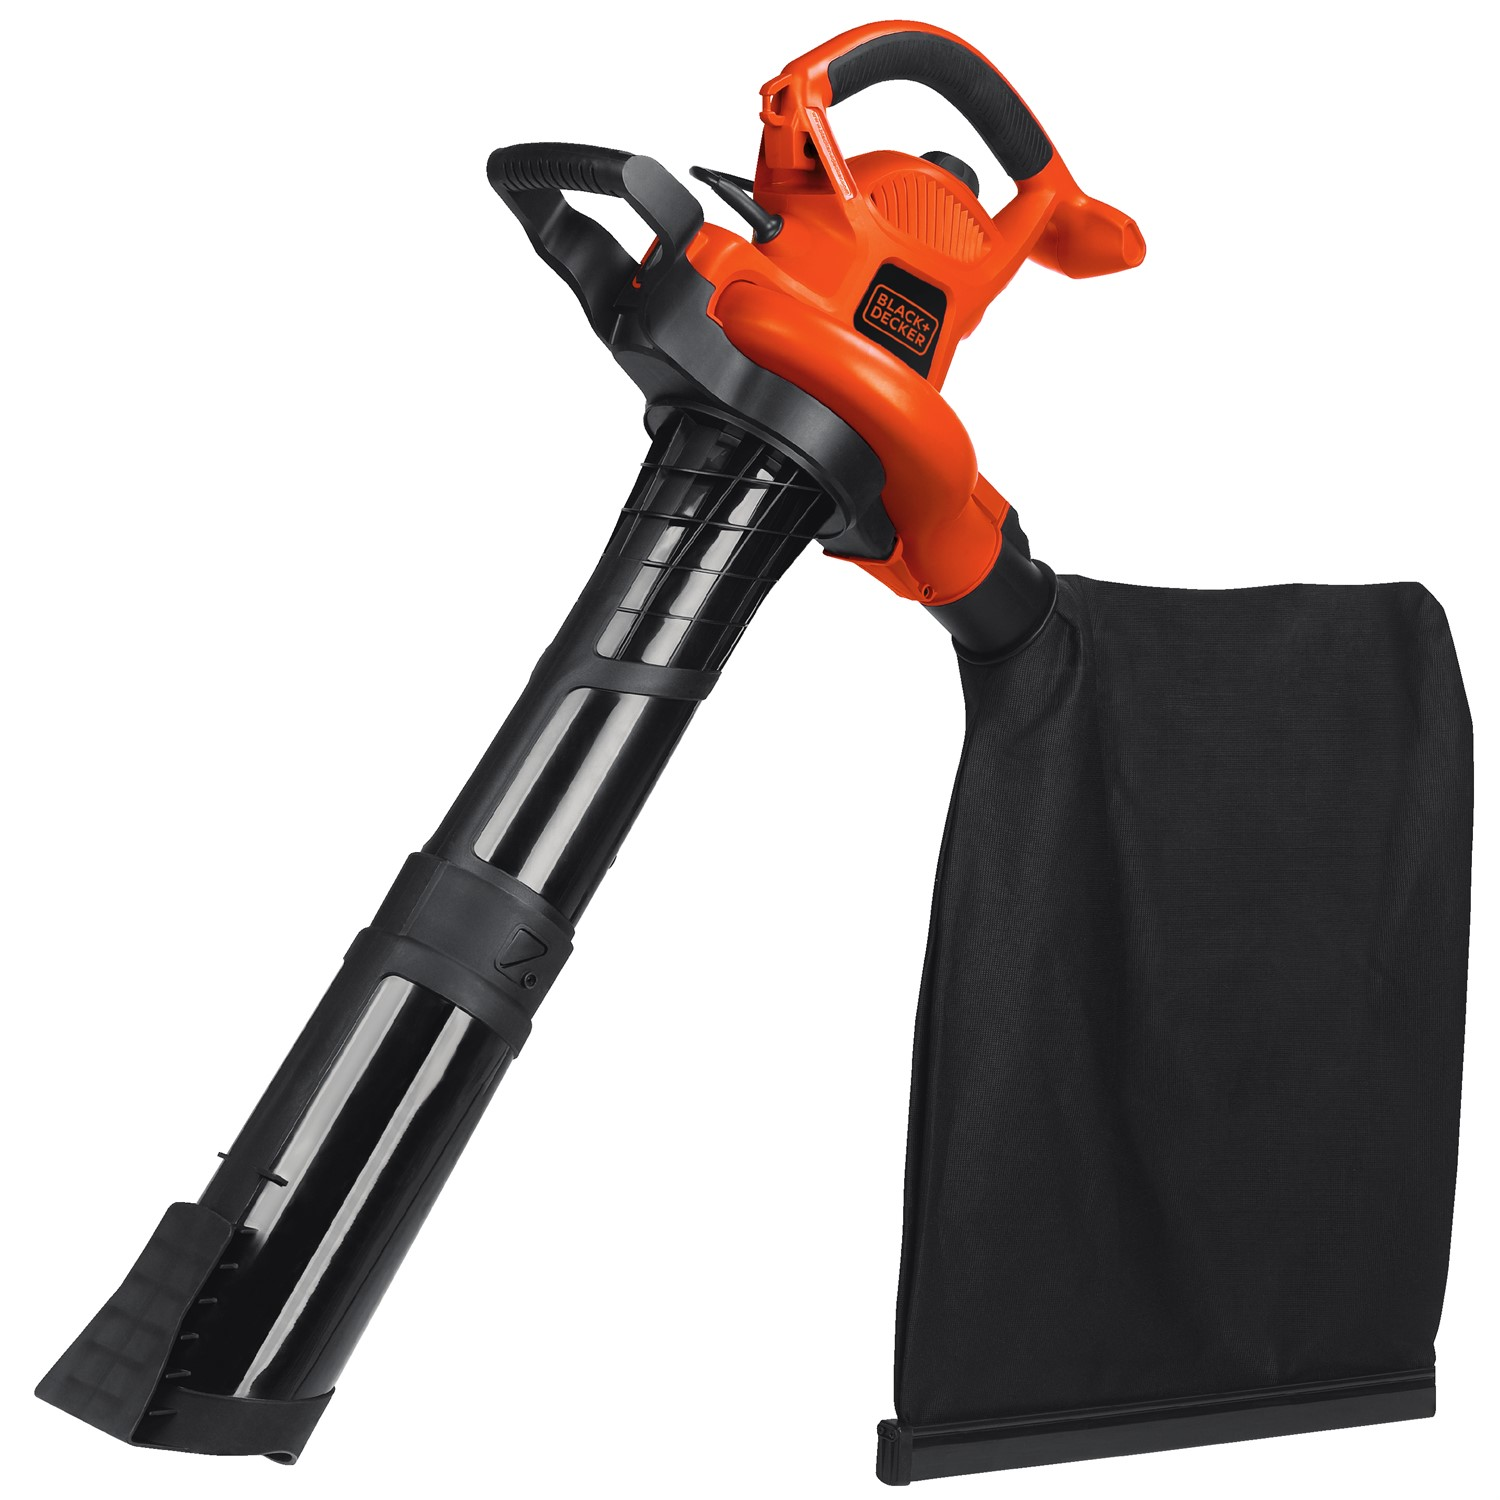 BLACK+DECKER BV6600 3-N-1 High Performance Blower/Vacuum/Mulcher